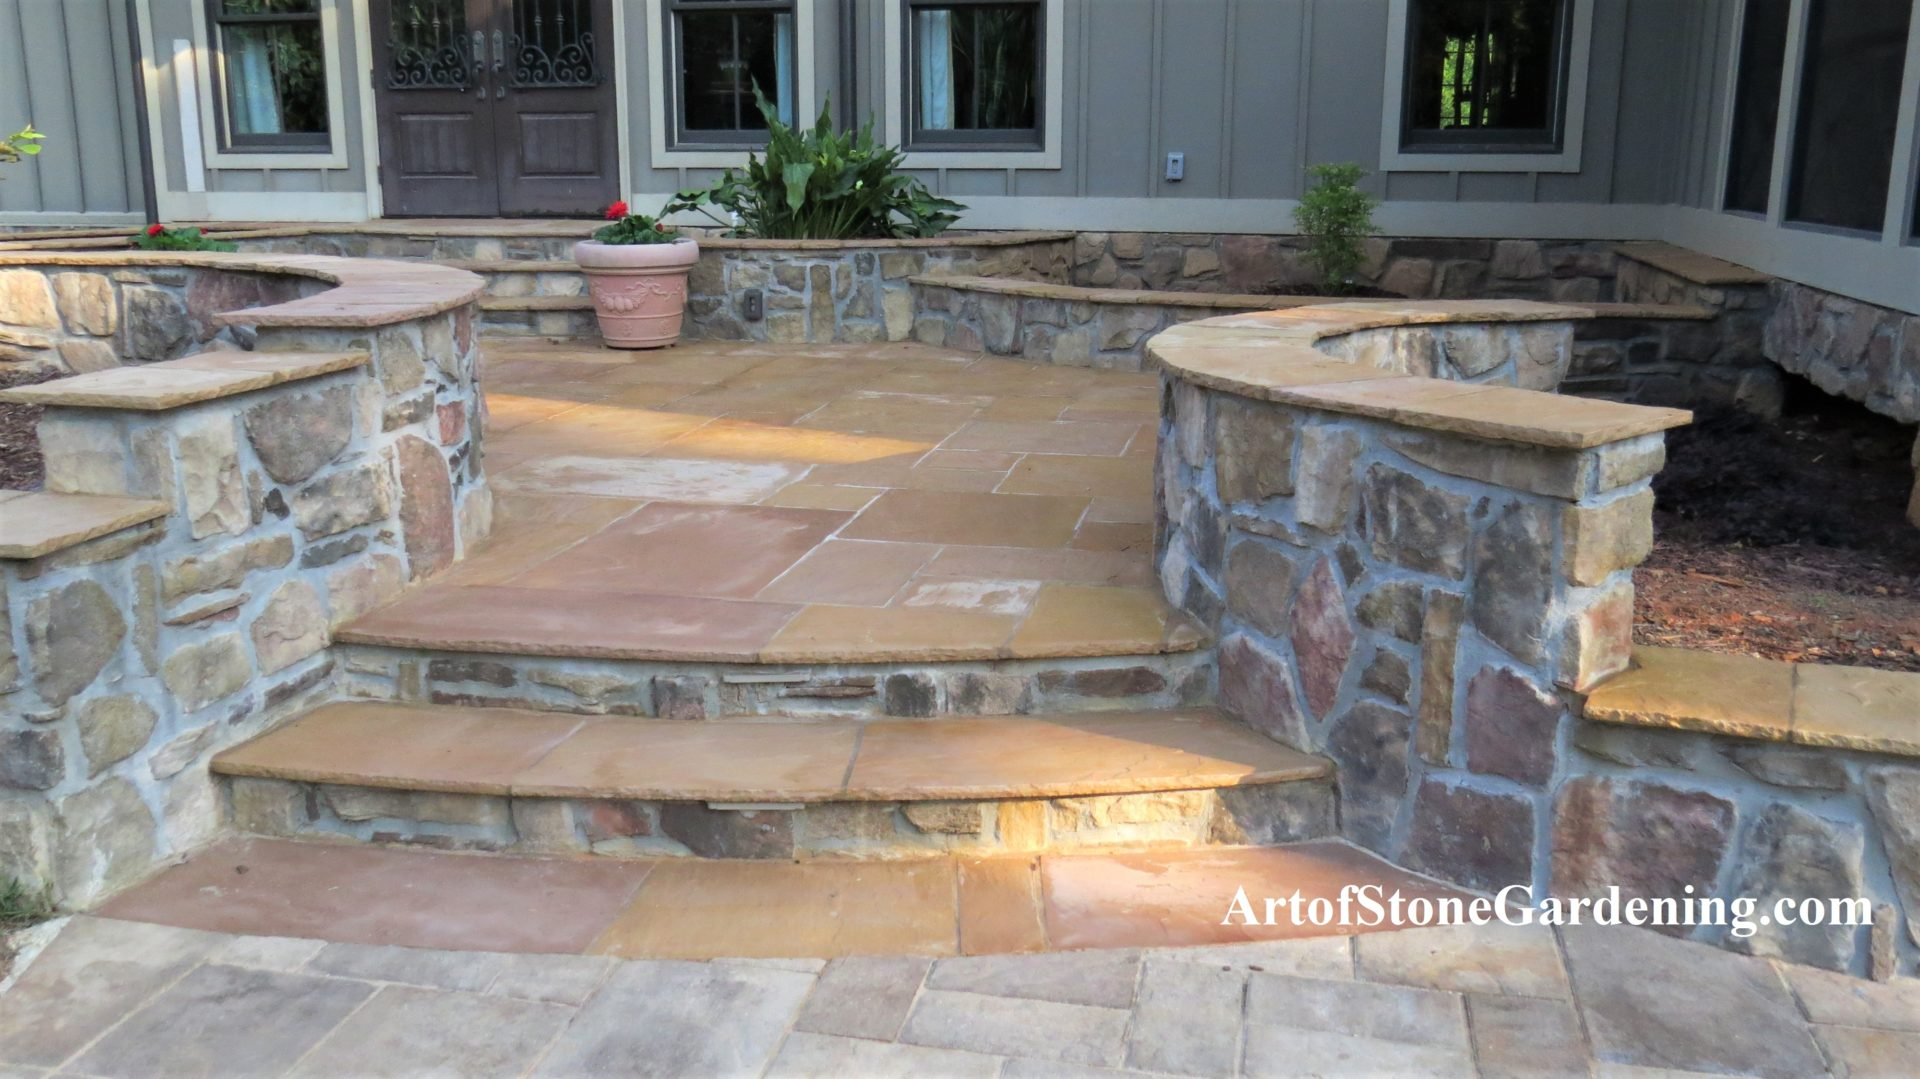 Stone patio and raised beds